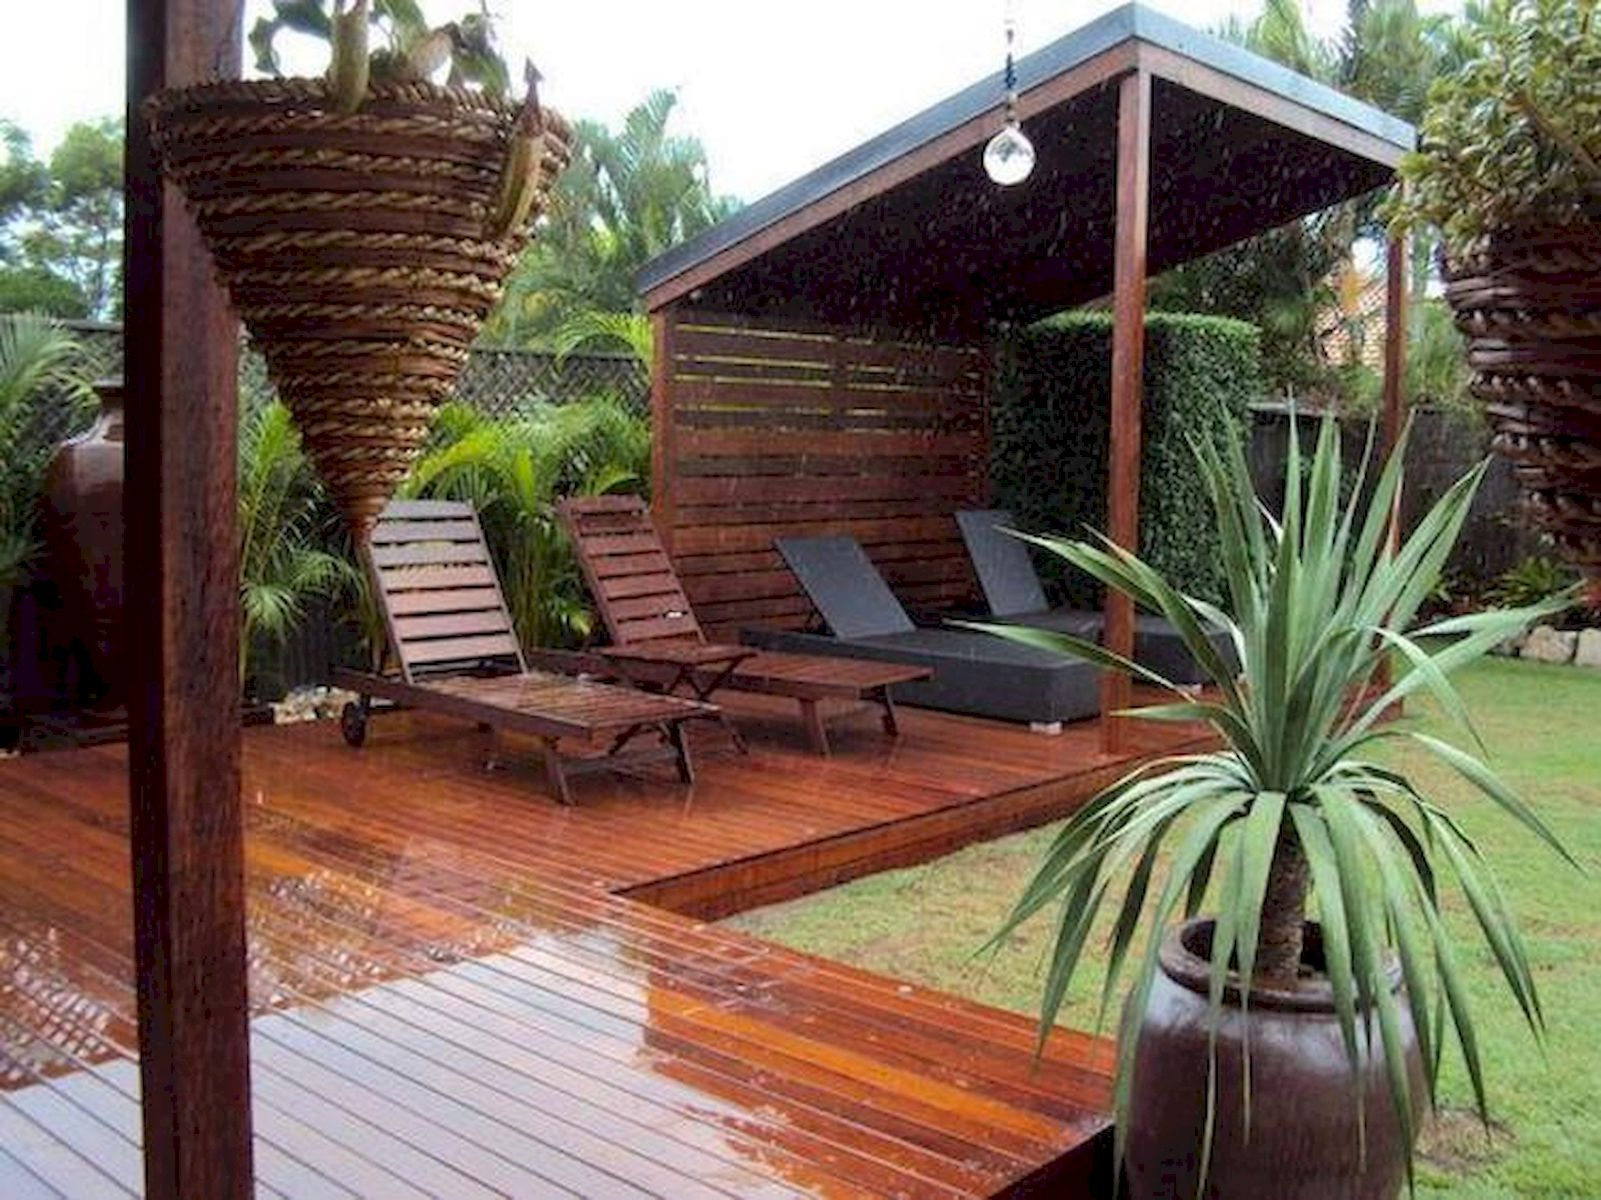 60 Awesome Backyard Privacy Design and Decor Ideas (34)